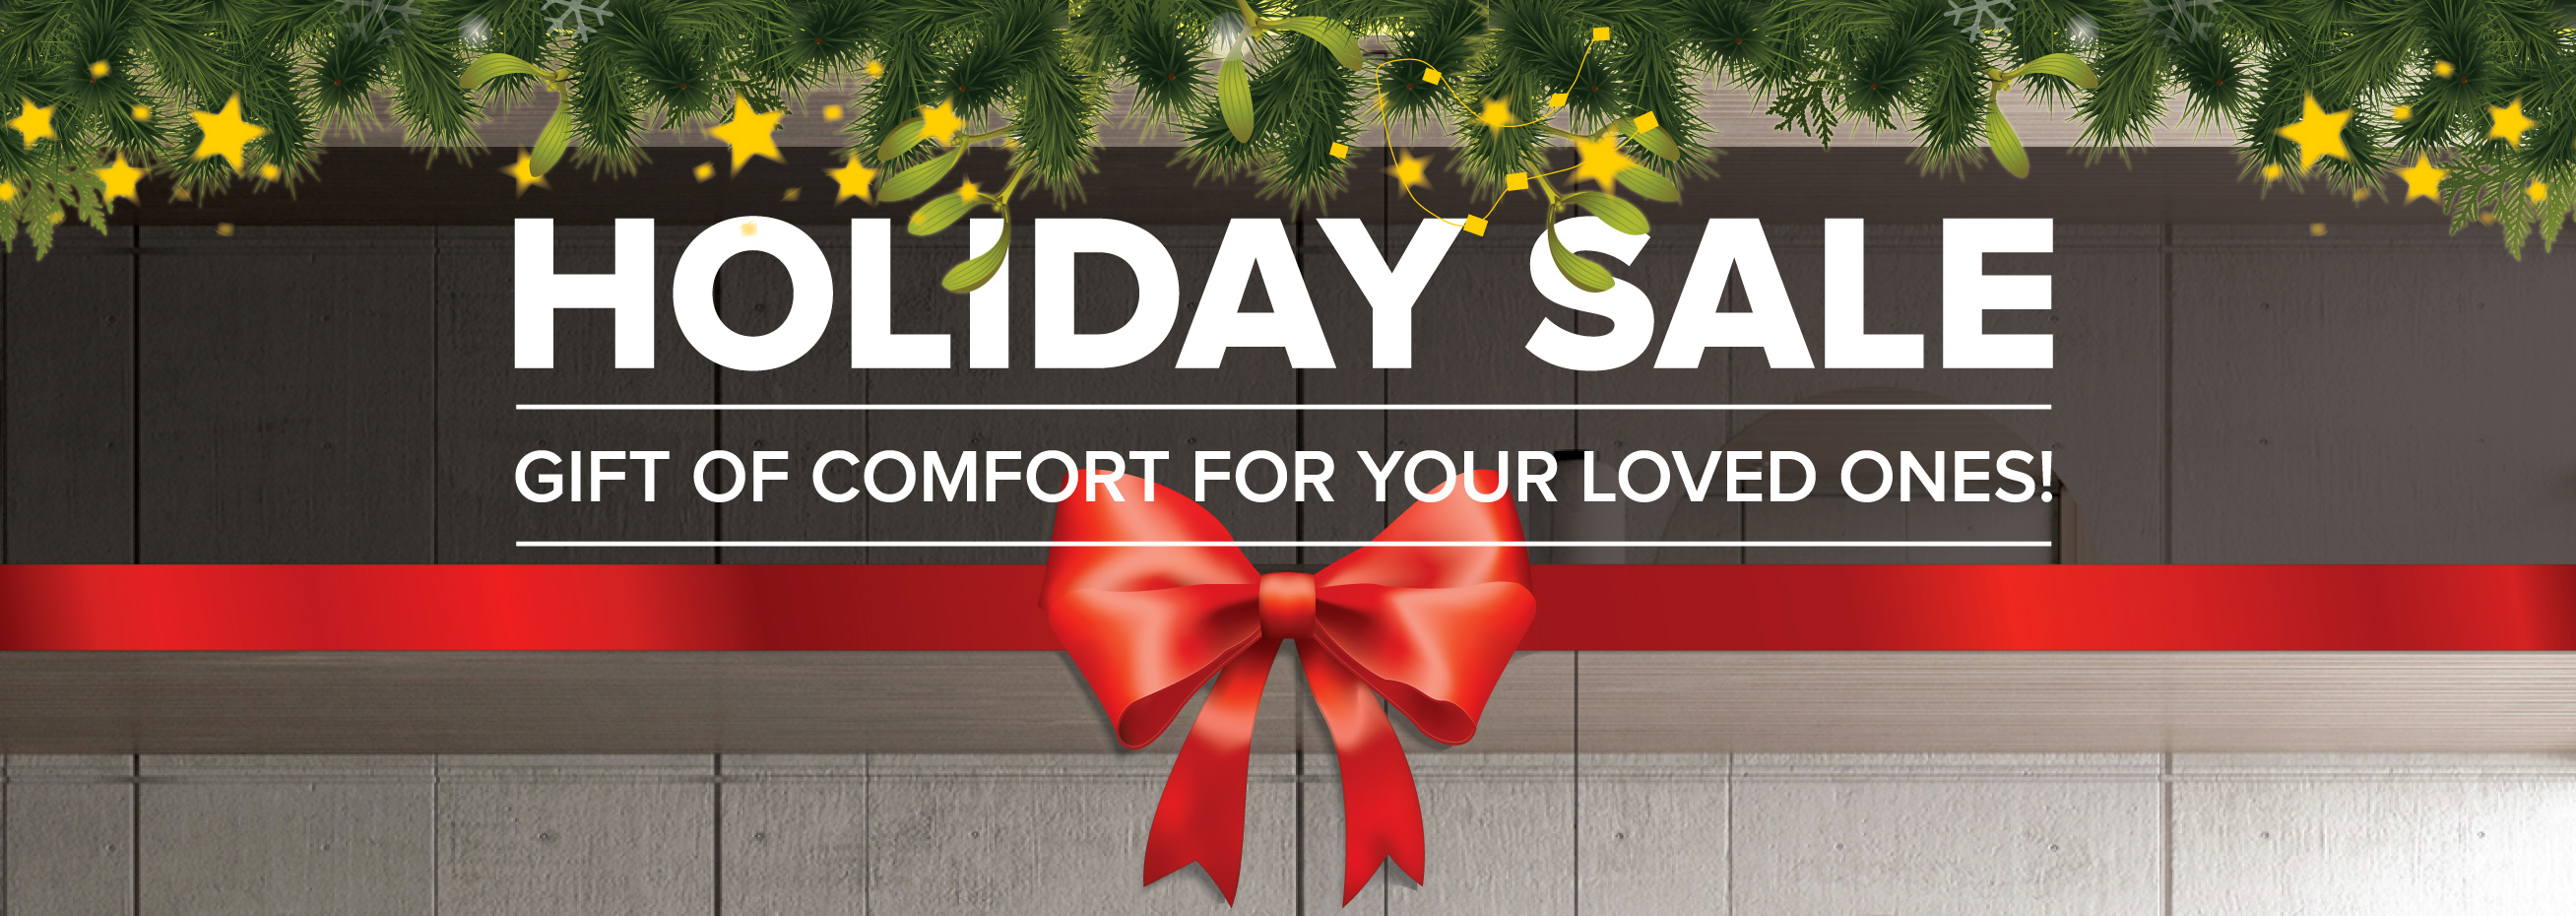 HOLIDAY-SALE-BANNER-FOR-WEBSITE